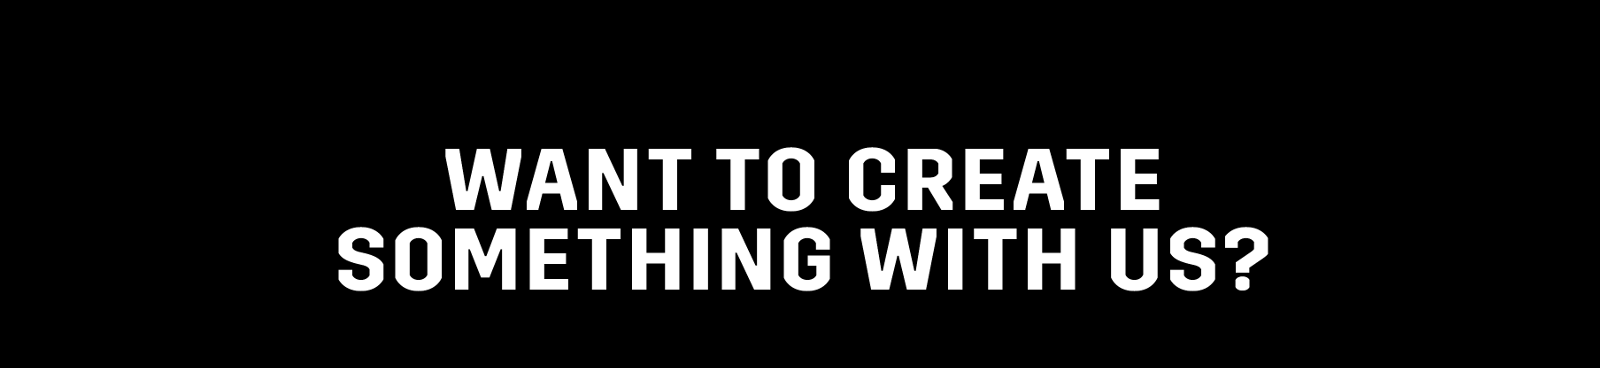 Want to create something with us?